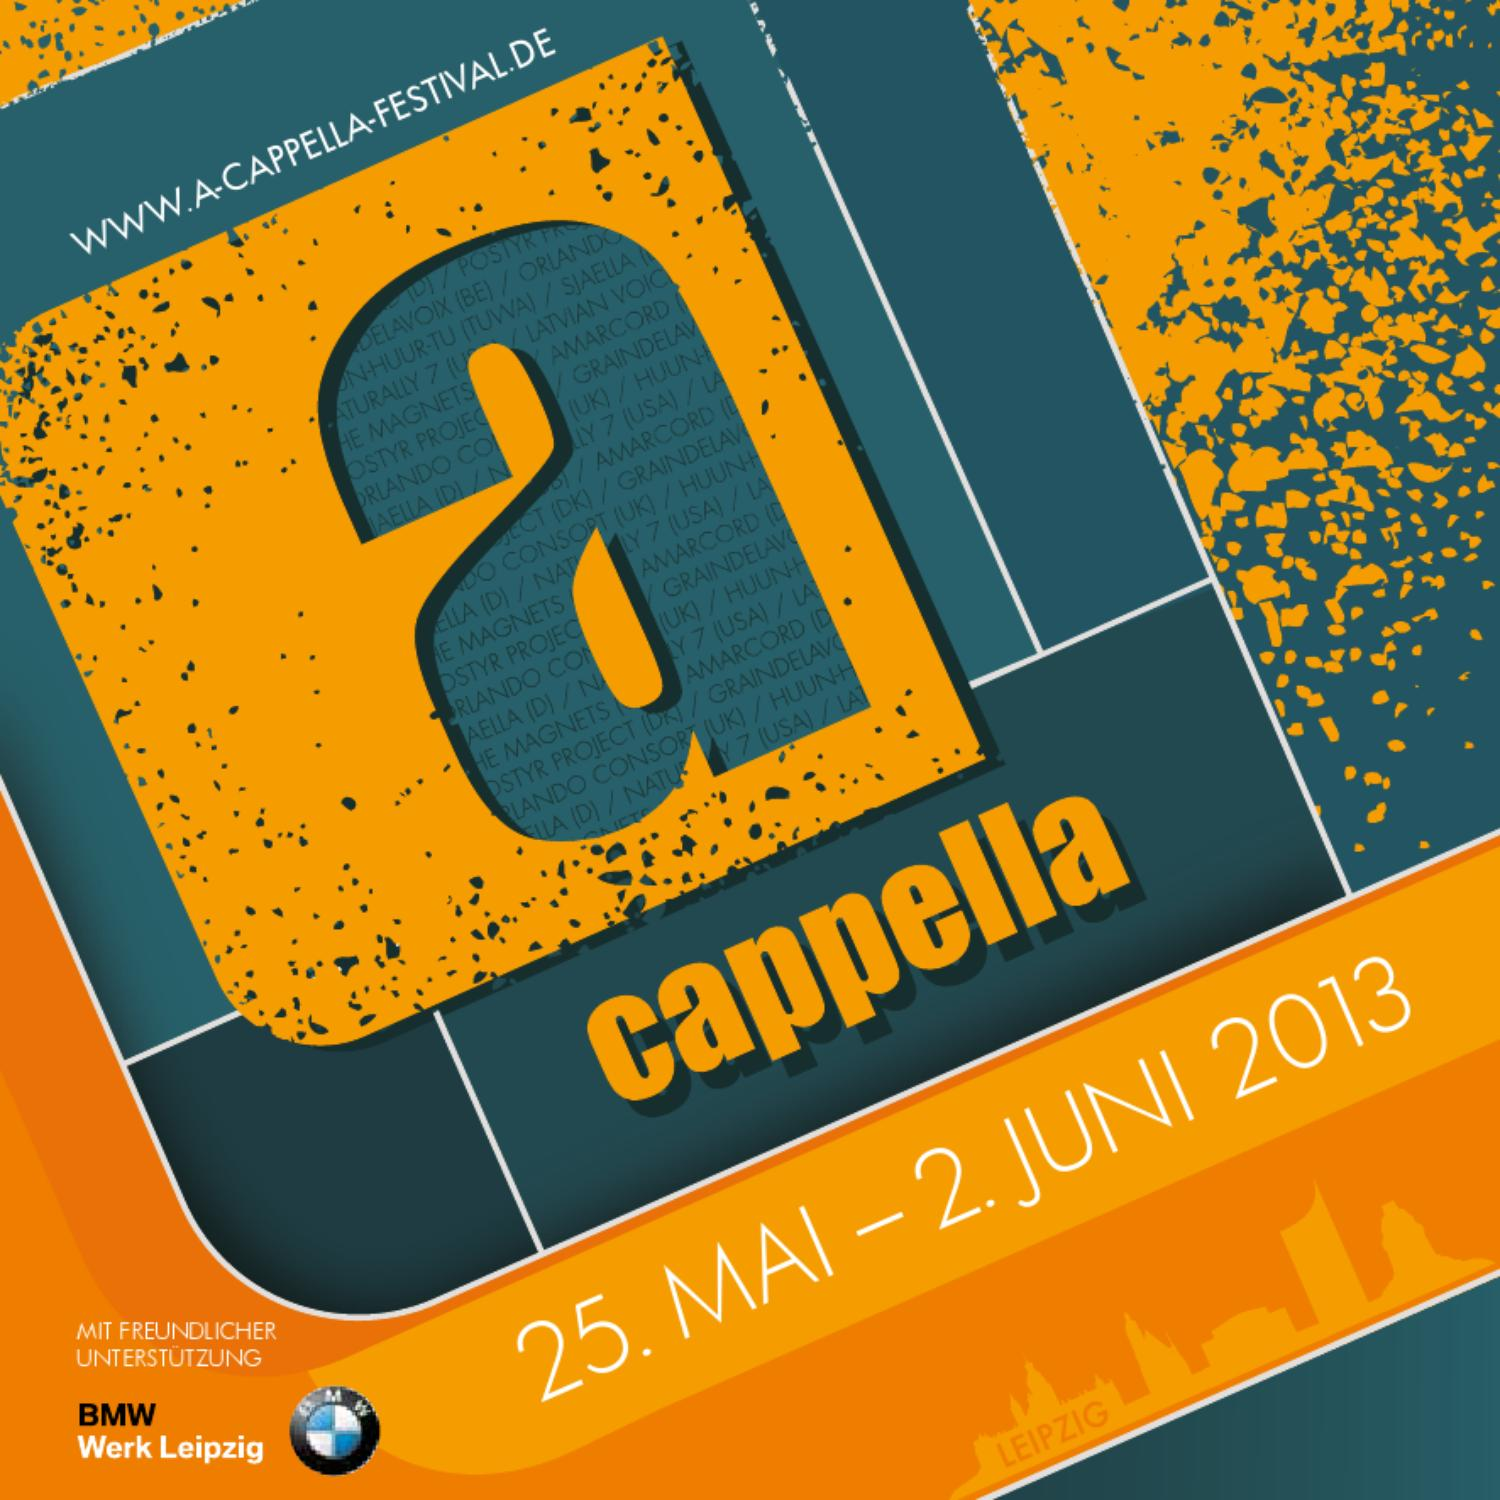 Festivalmagazin a cappella 2013 by DREIECK MARKETING Maud